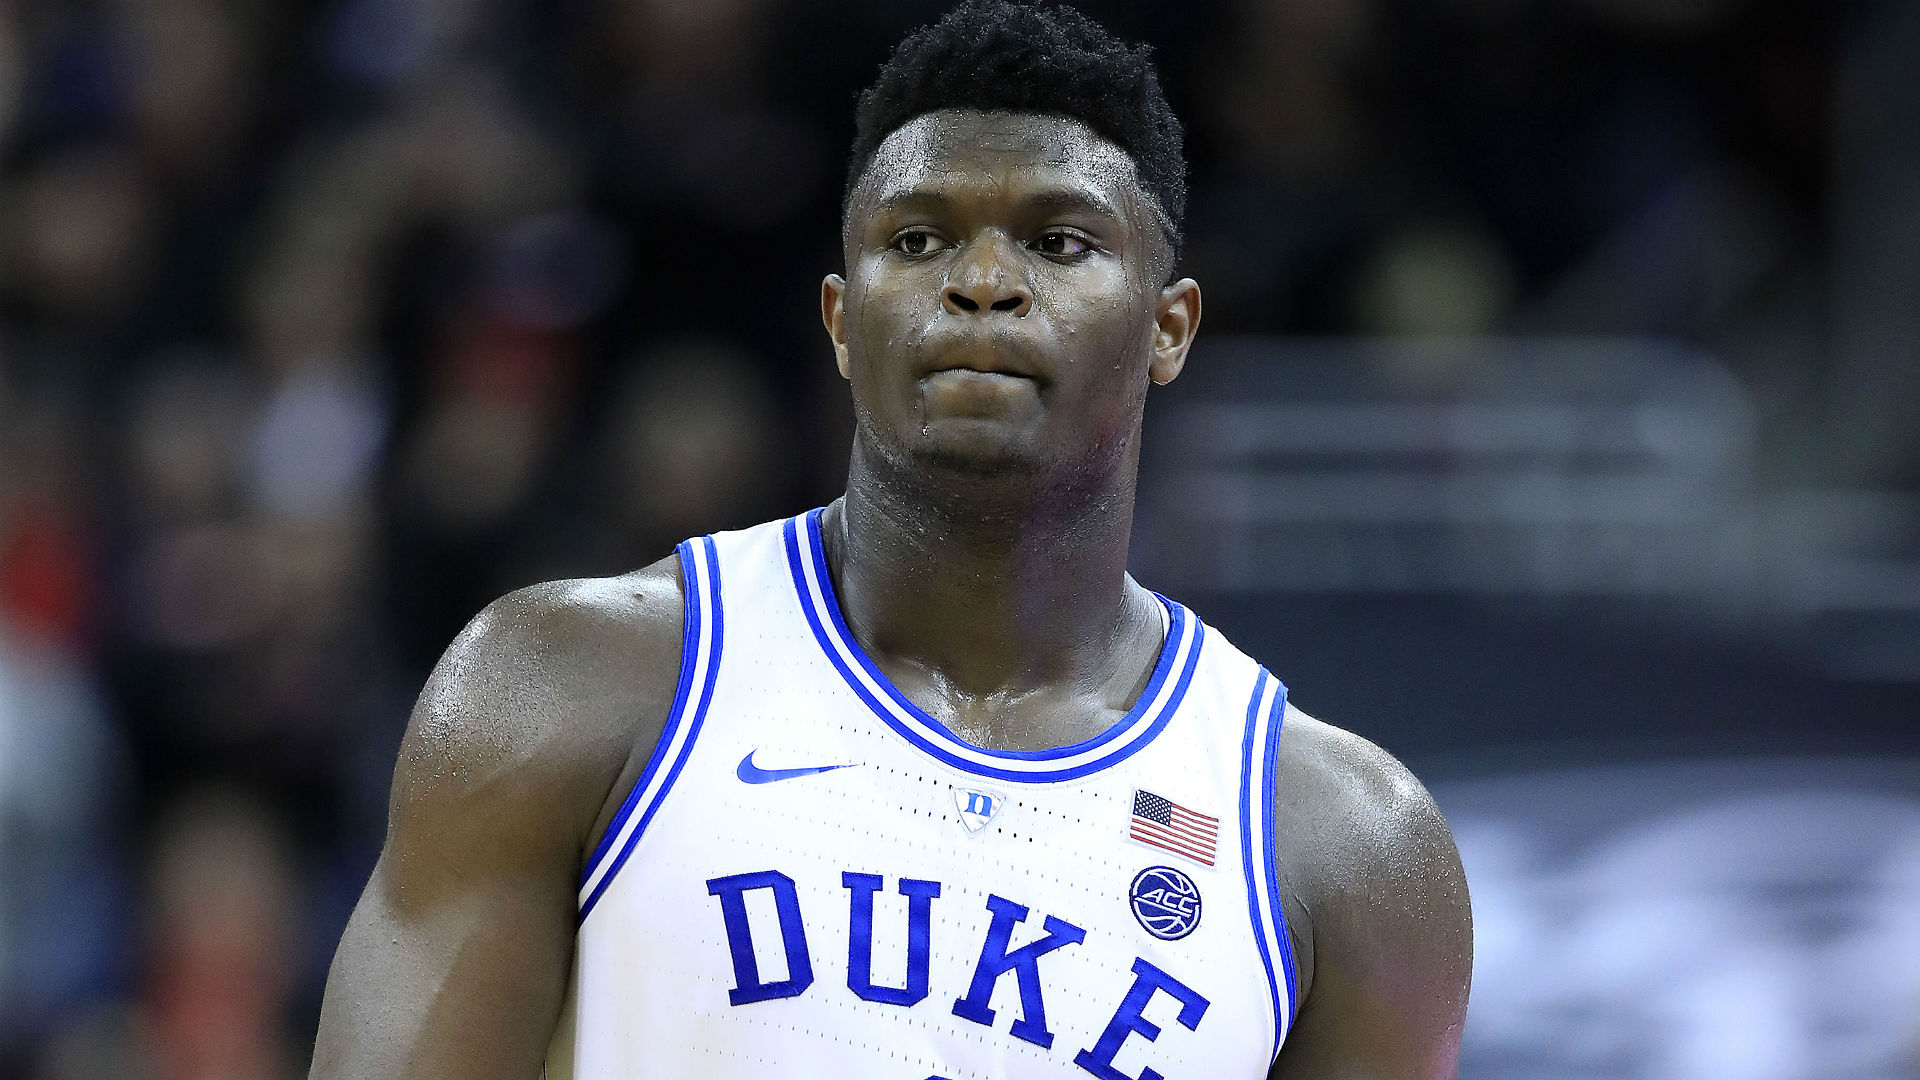 Zion Williamson not expected to face North Carolina – Krzyzewski